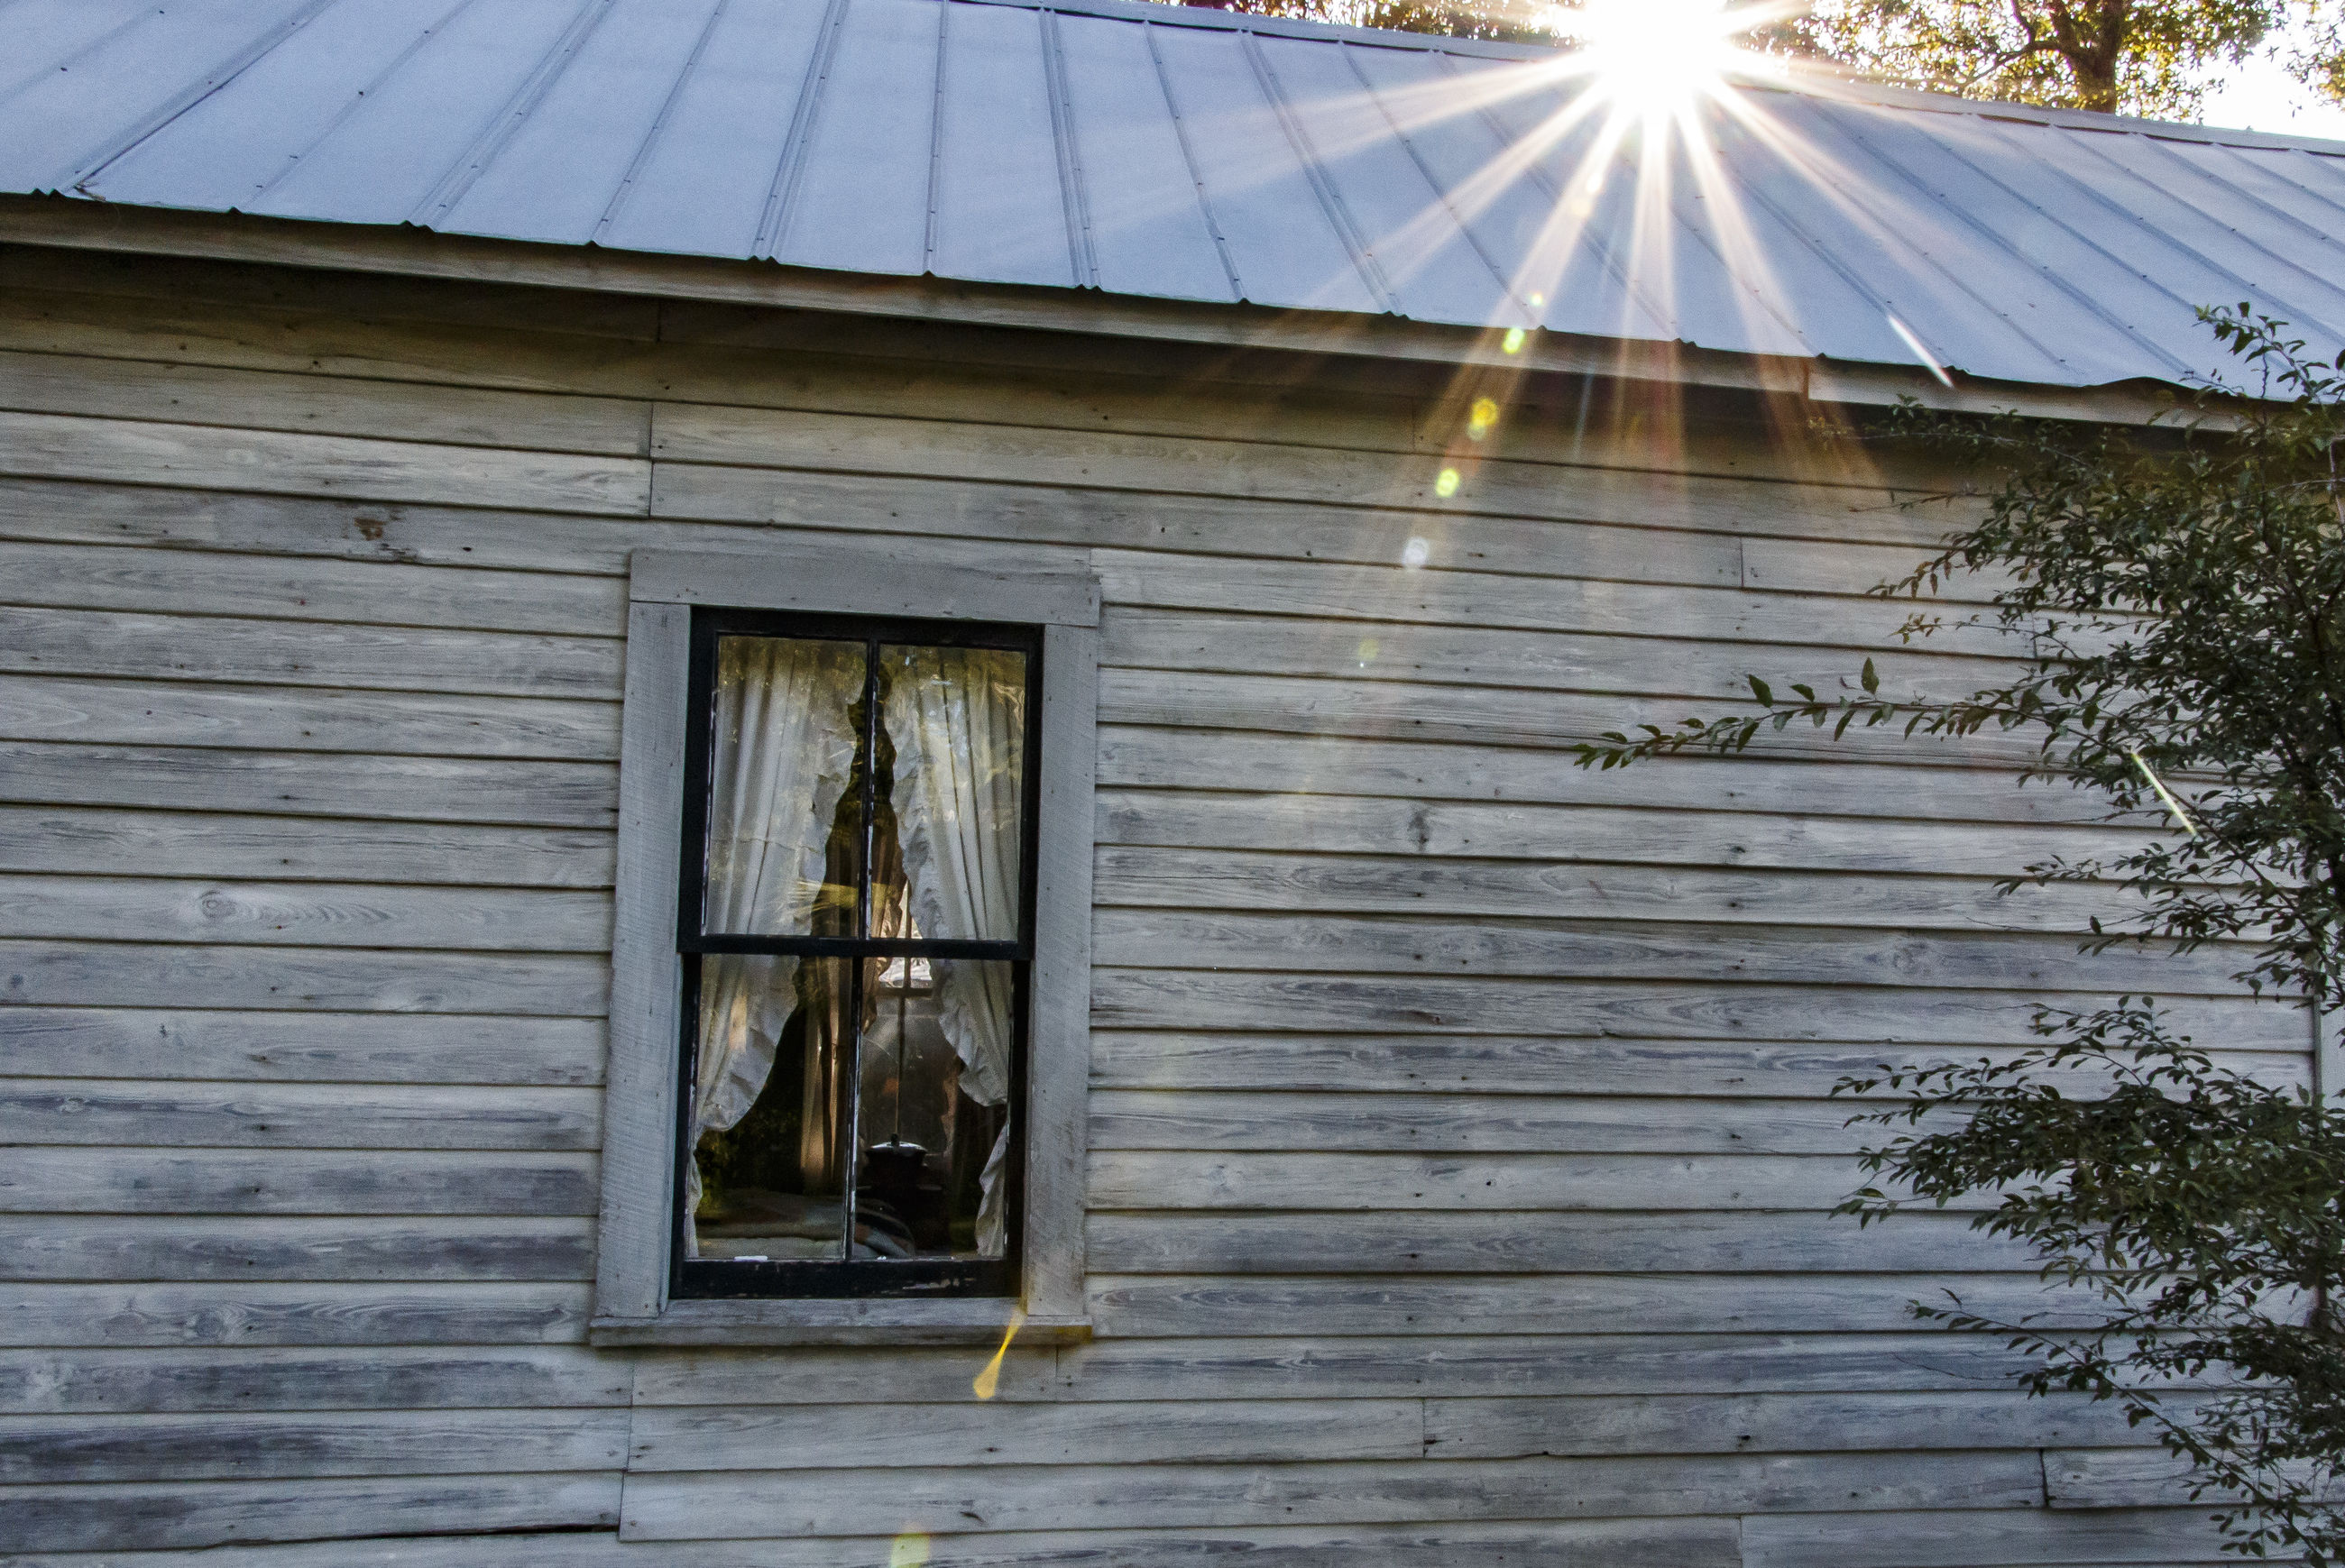 window, built structure, architecture, sunbeam, building exterior, house, lens flare, sun, day, outdoors, weathered, no people, window frame